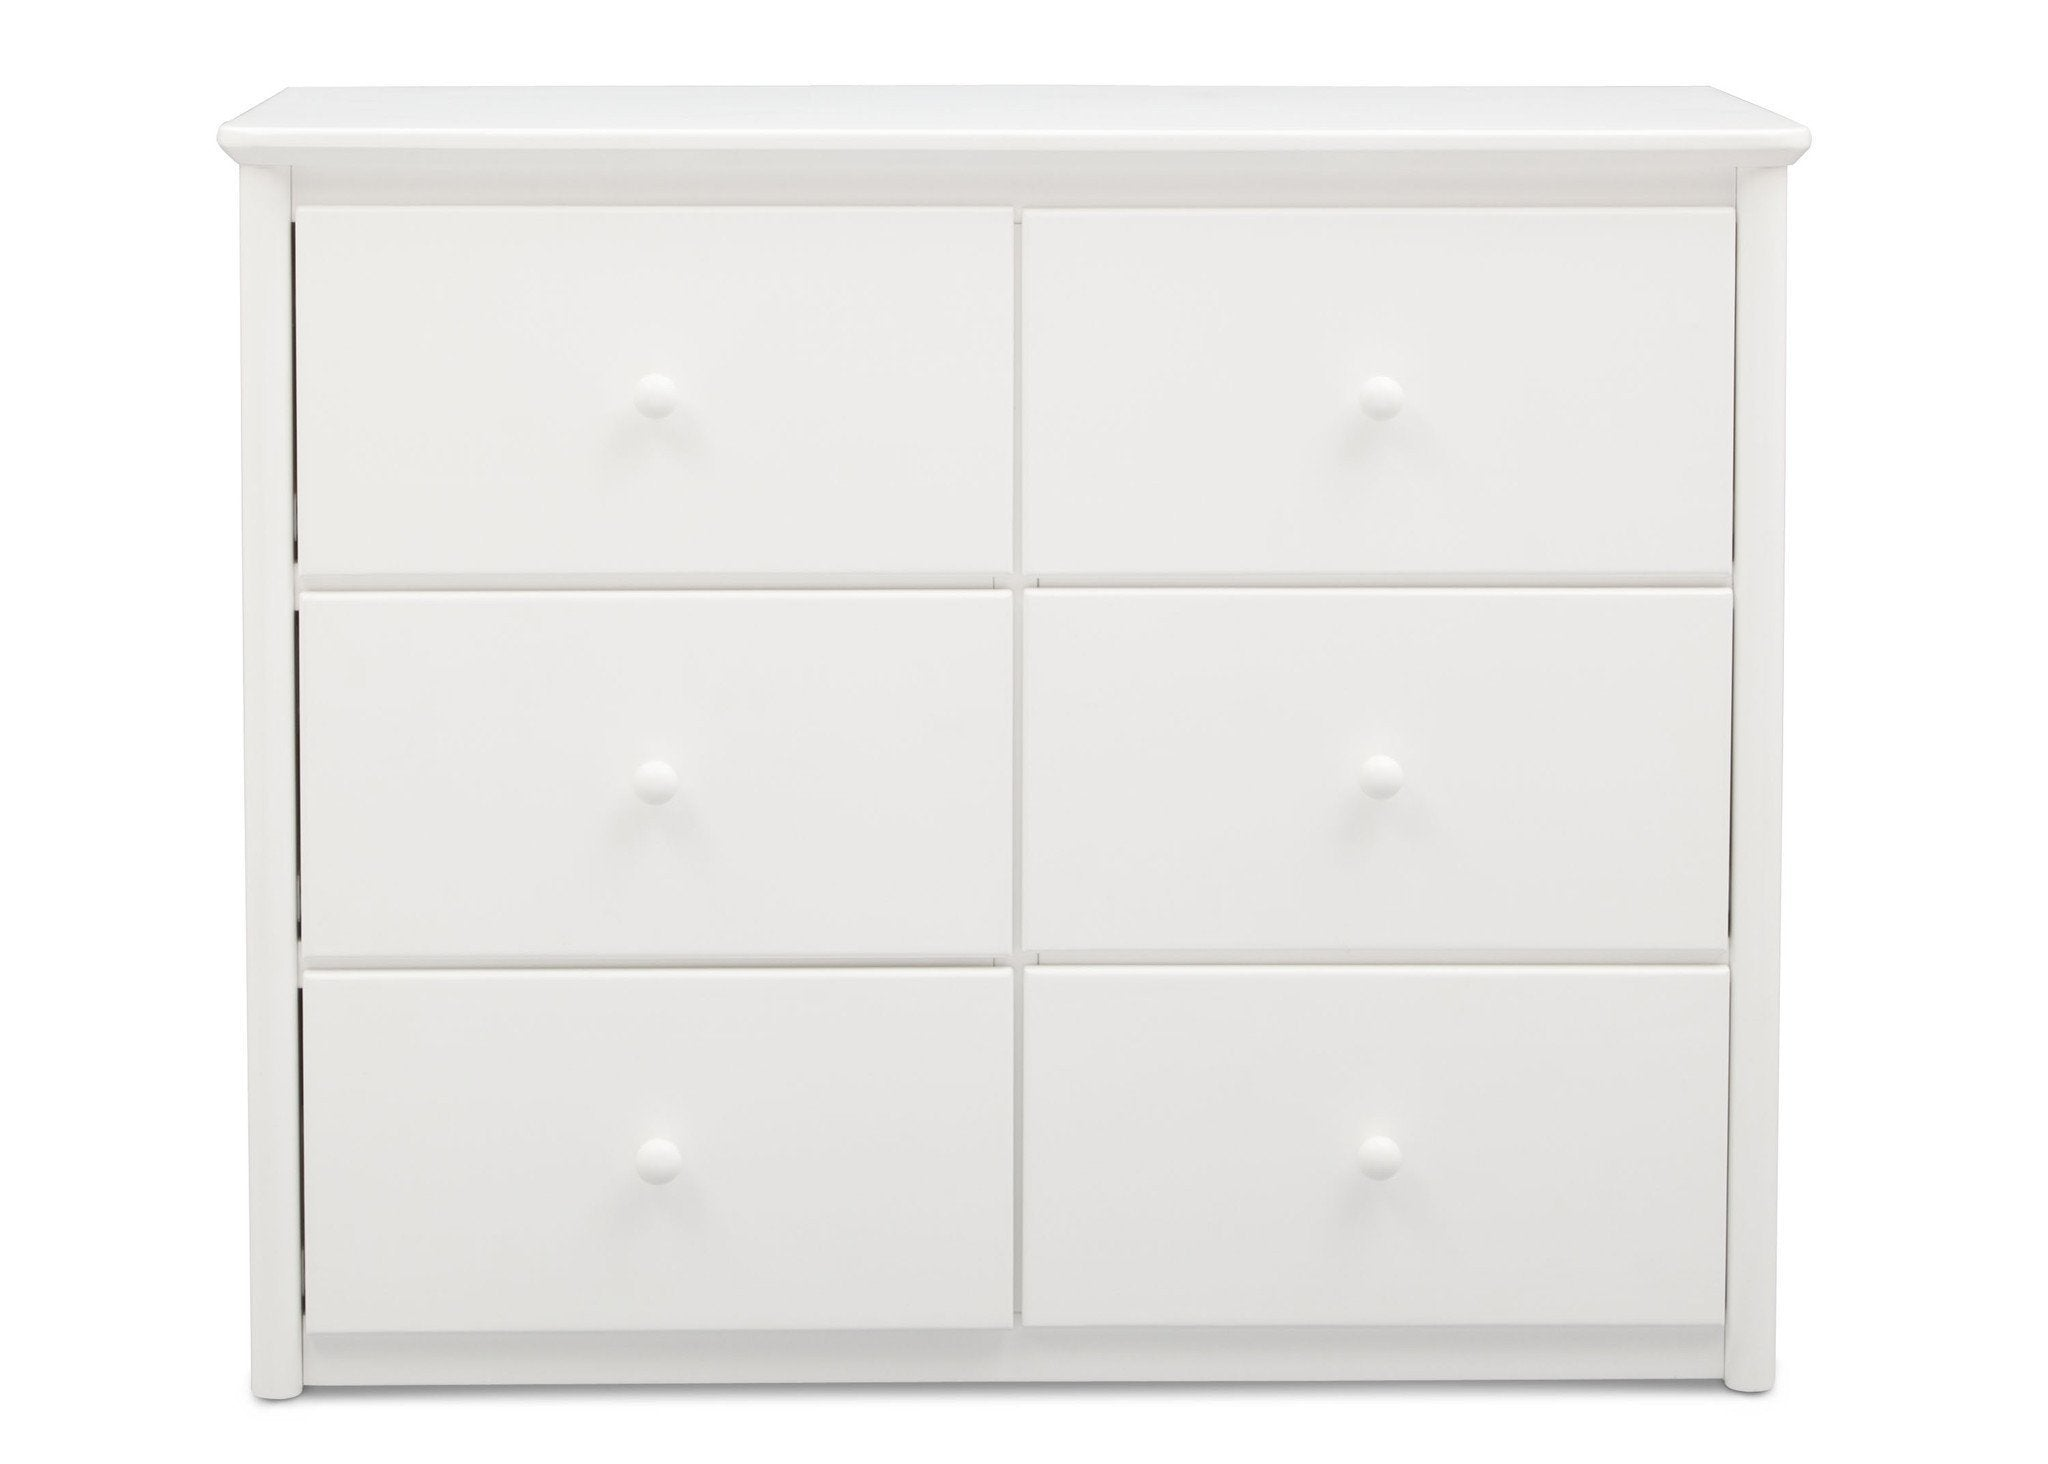 Delta Children White (100) Somerset 6 Drawer Dresser Front View a1a